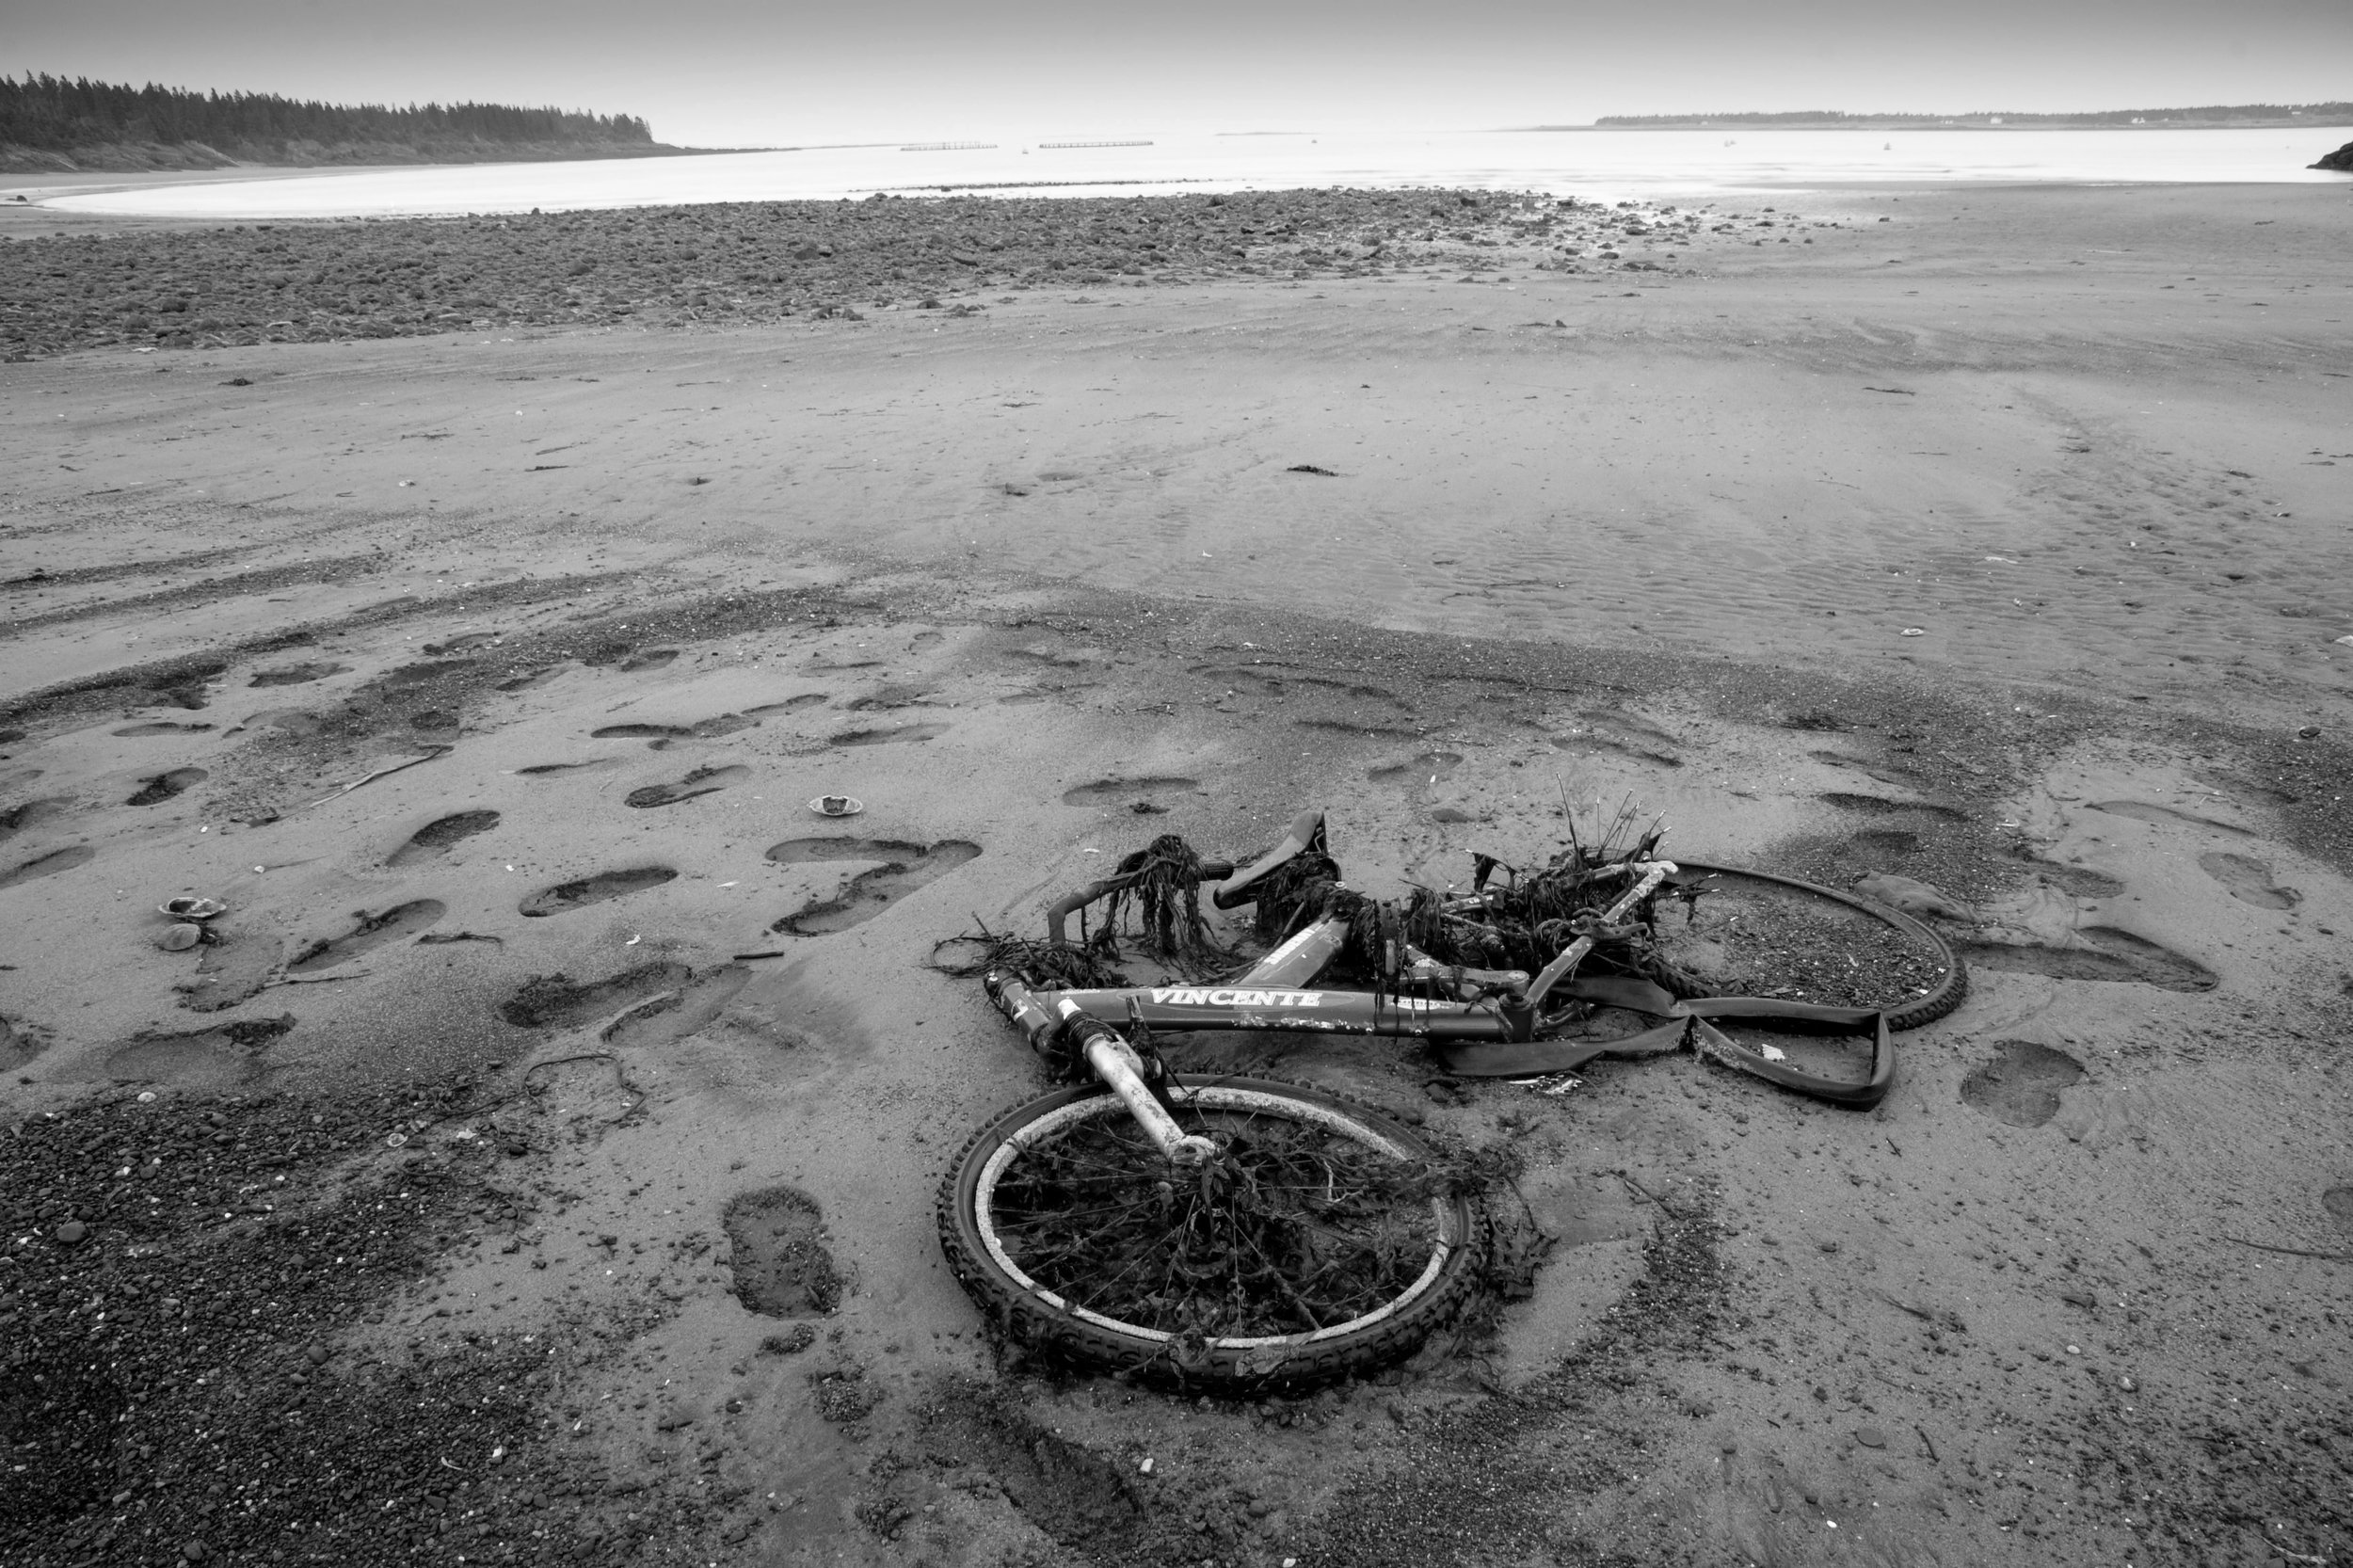 Washed up bicycle, Seal Cove Beach